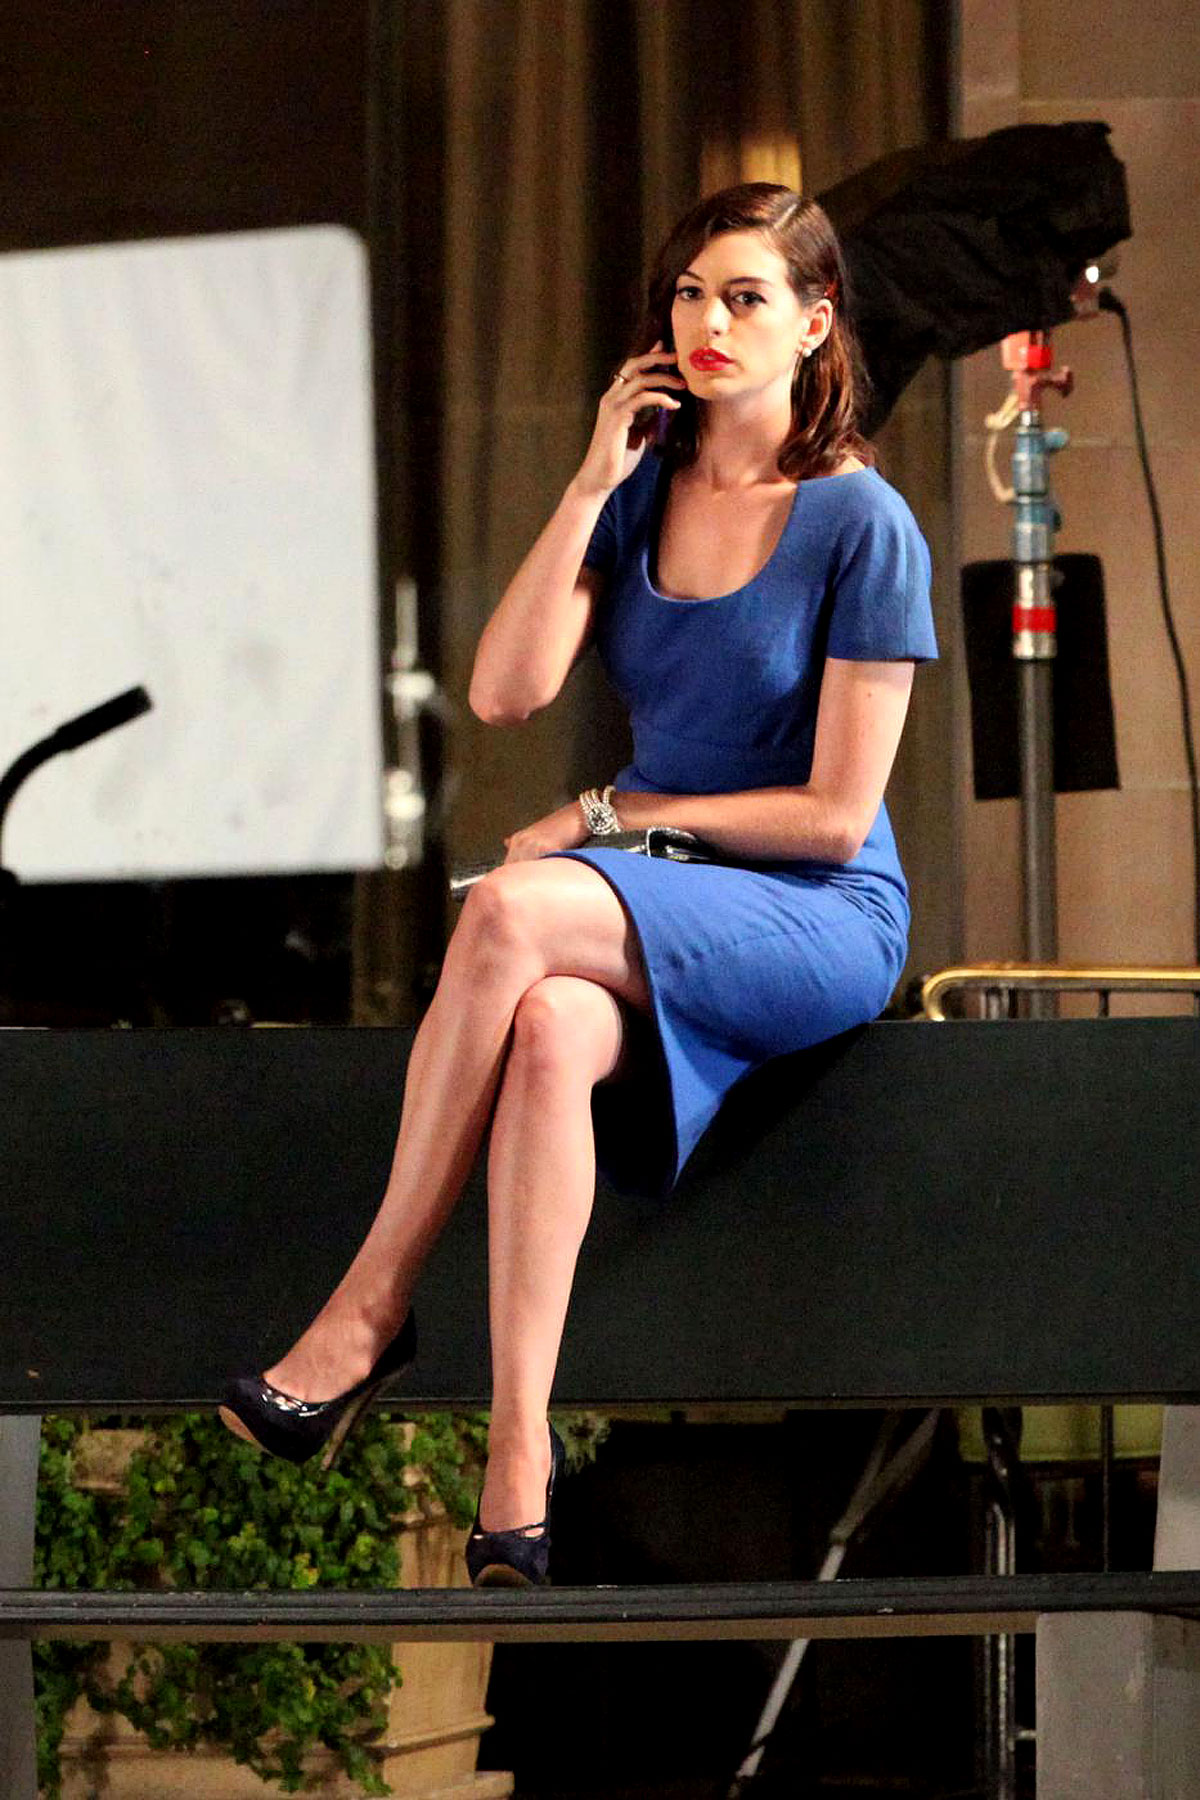 PHOTO GALLERY: Anne Hathaway's Glamorous on Set